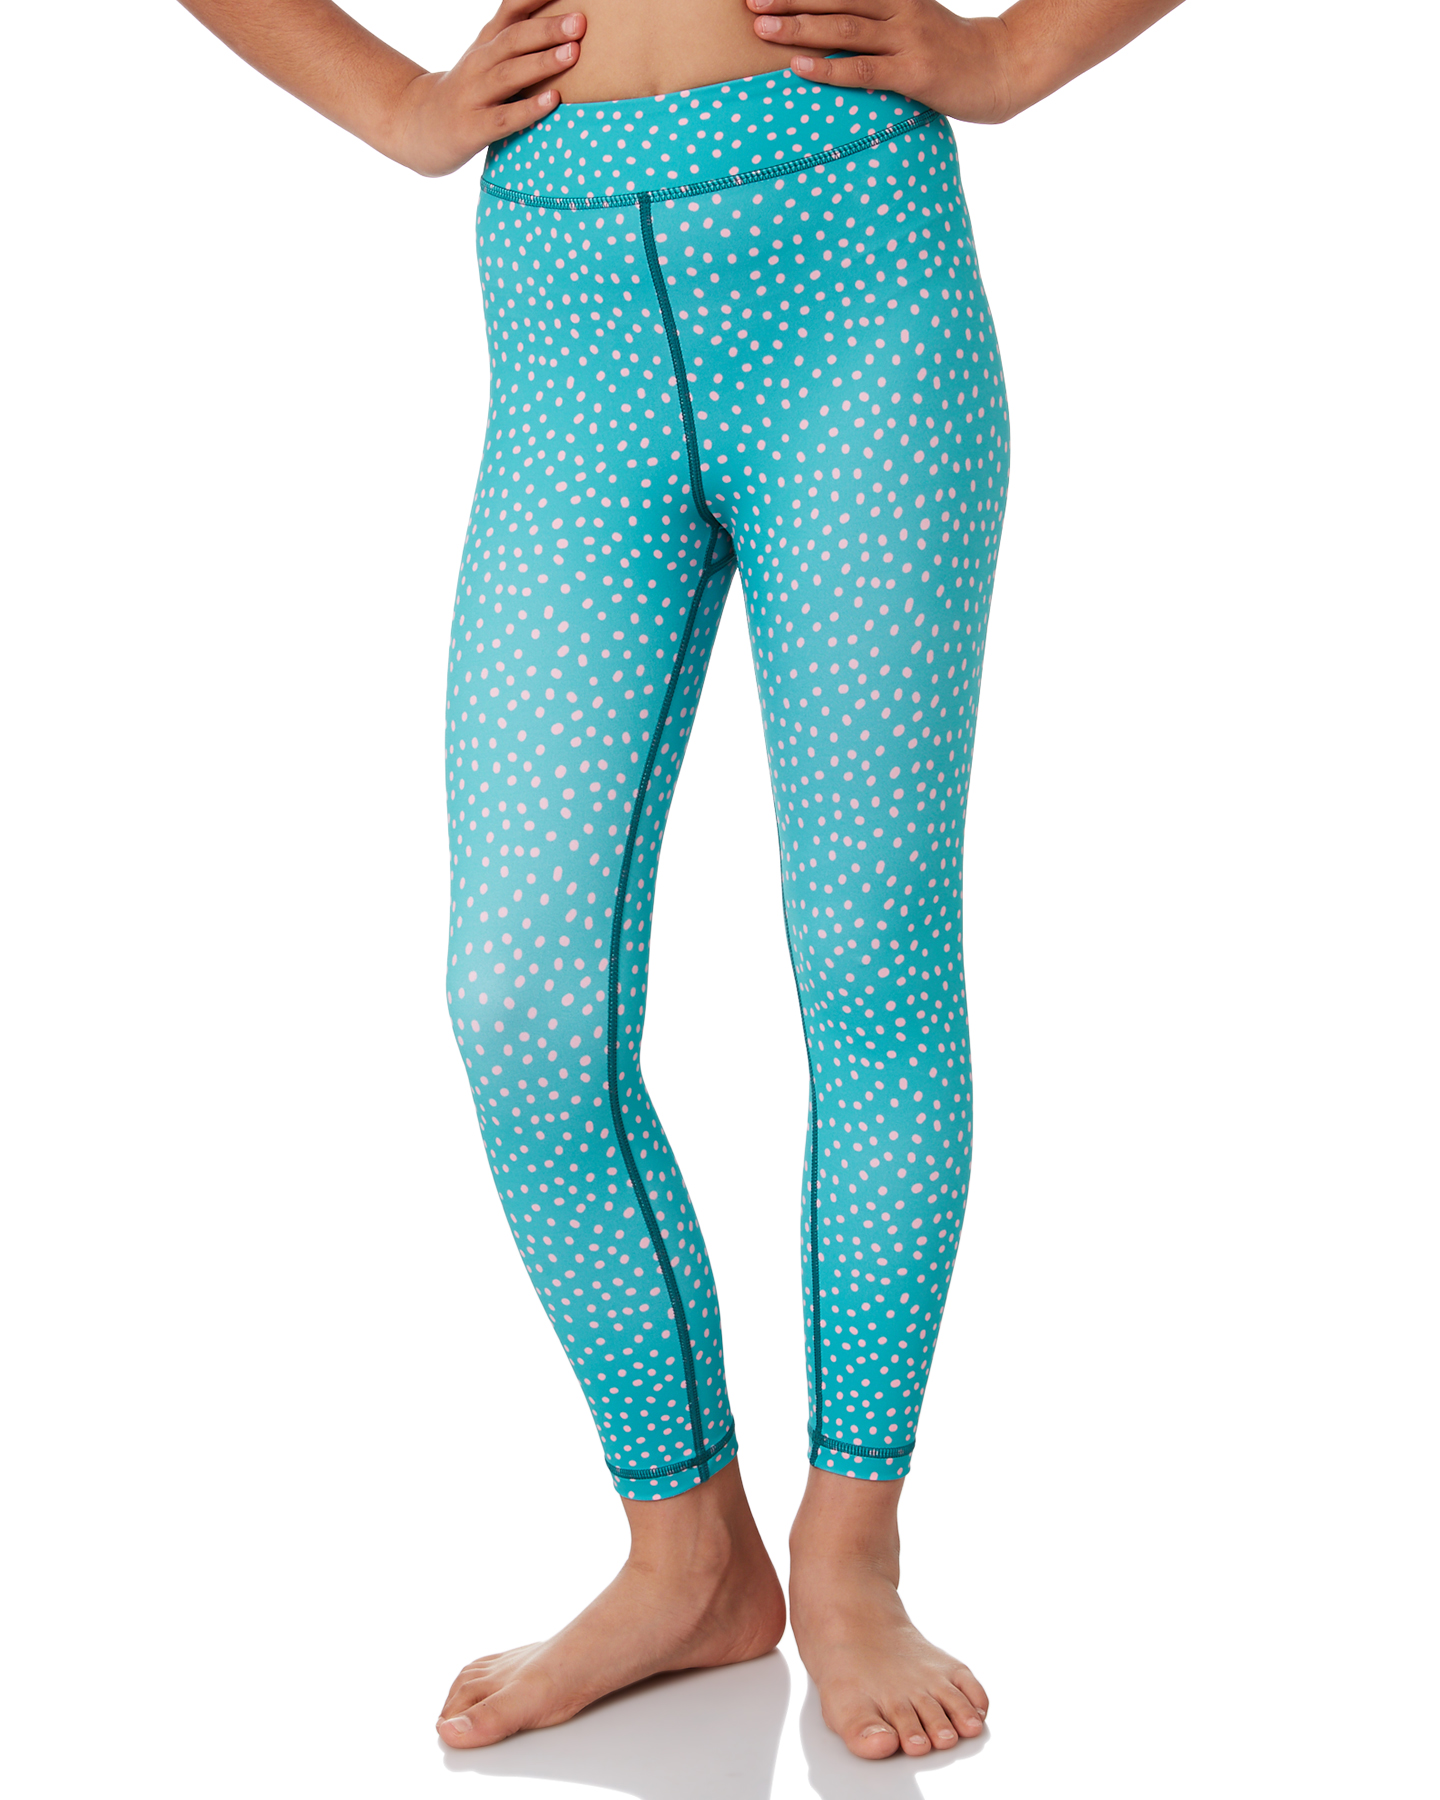 Sunny Active Girls Green Sprinkles Tights Green Sprinkles